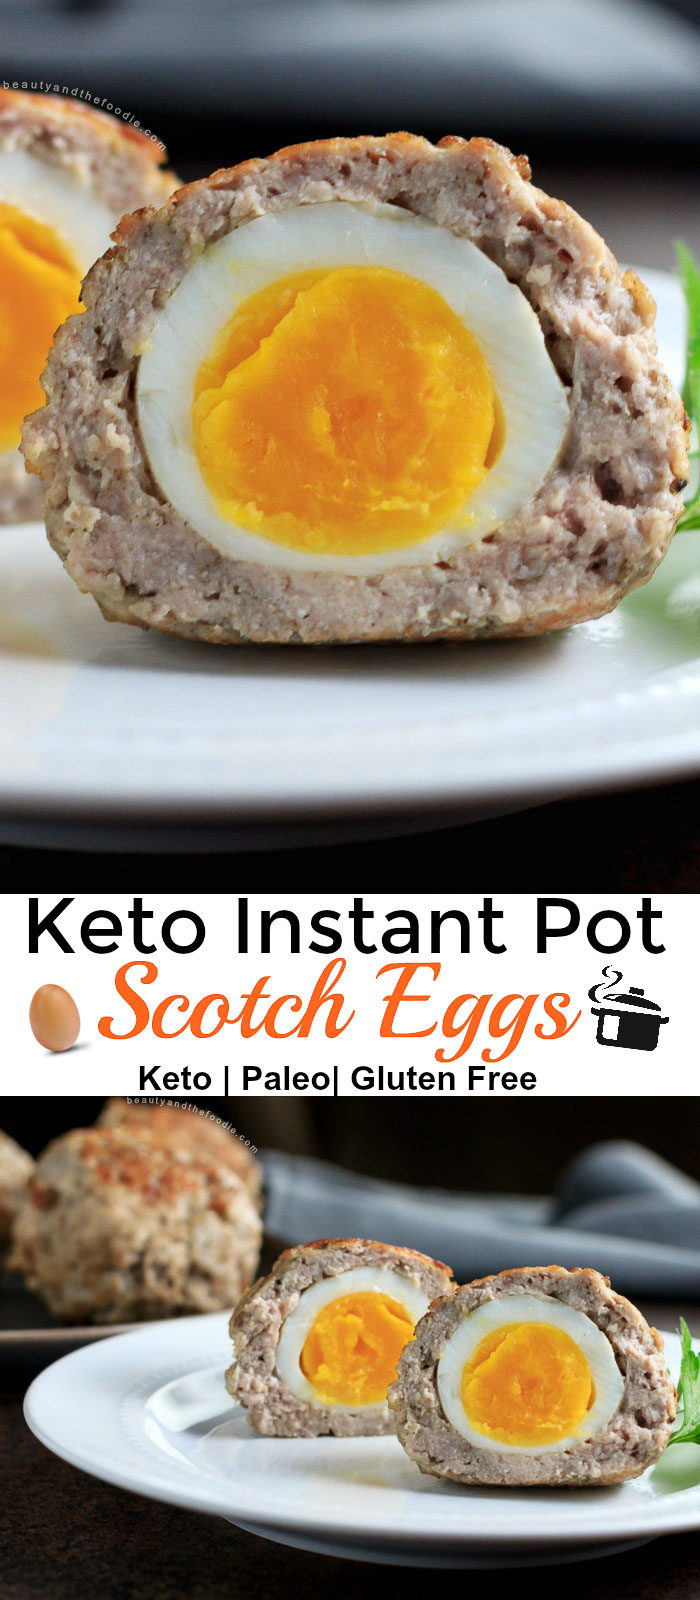 Instant Pot Keto Scotch Eggs